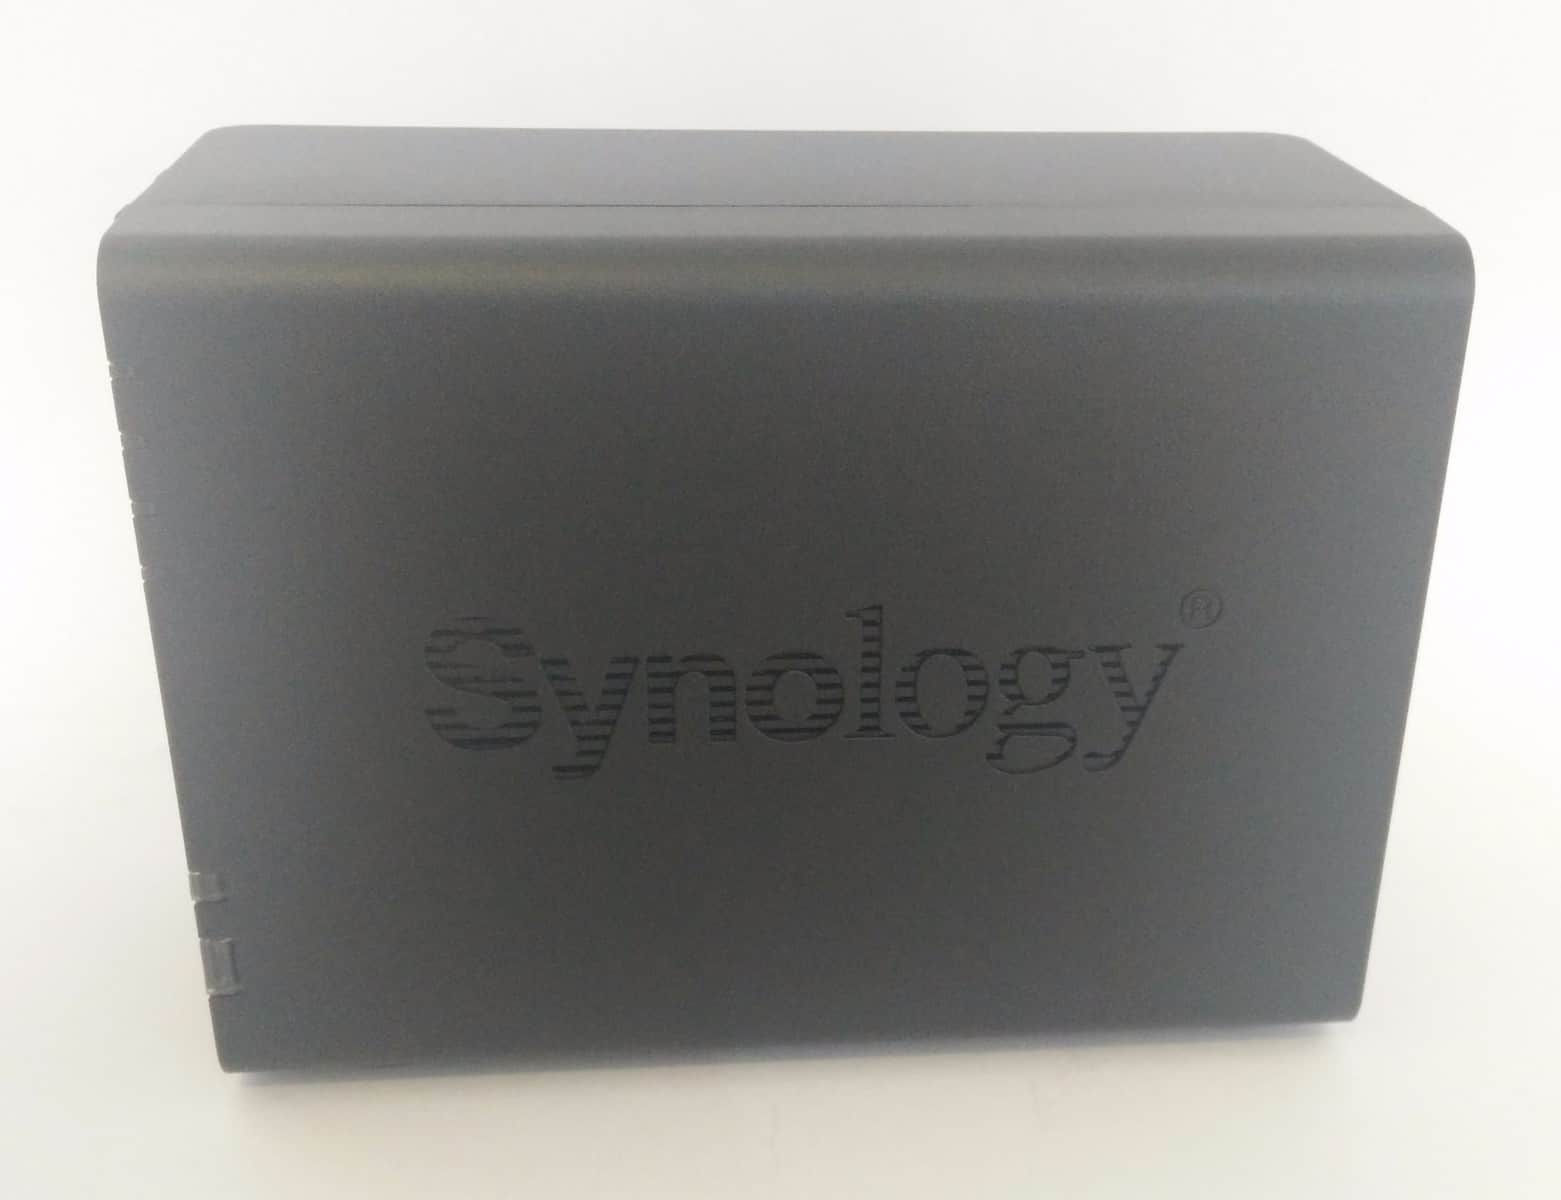 Synology-DS216II-Photo-09 Synology DS216+II 2 Bay NAS Review